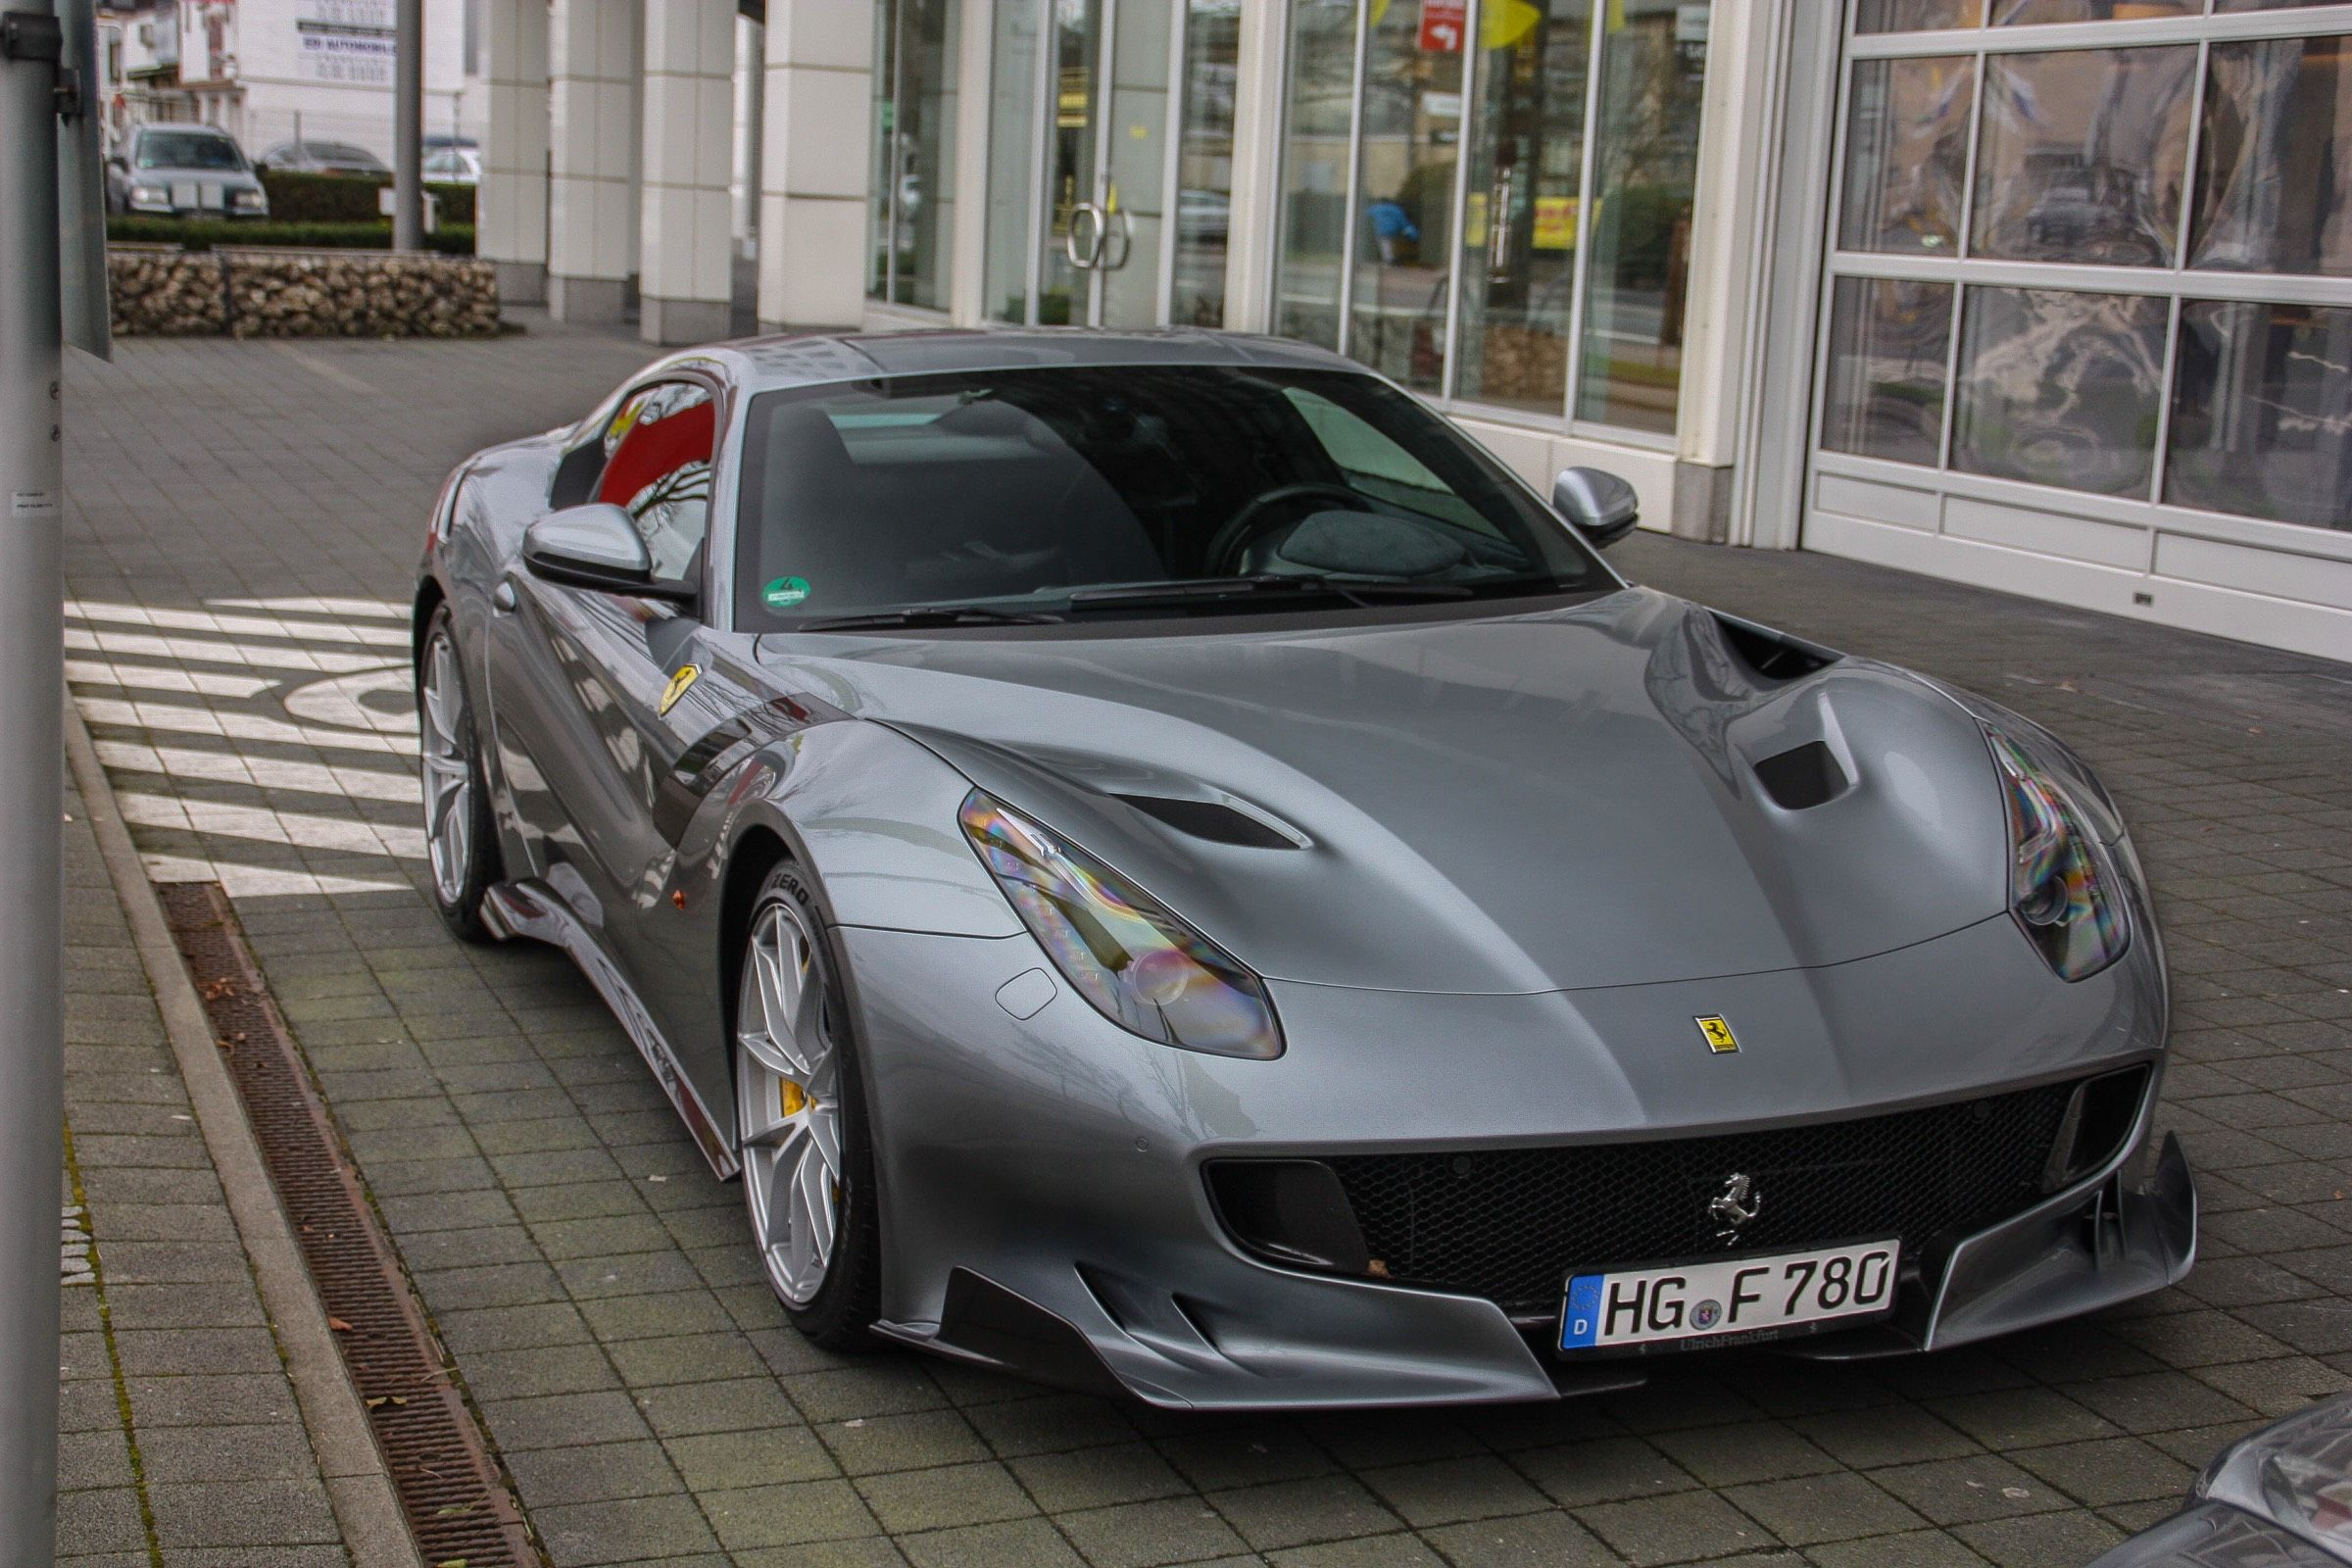 photo_9415_ferrari_f12tdf_780hp_227524_original.jpg (2400×1600)